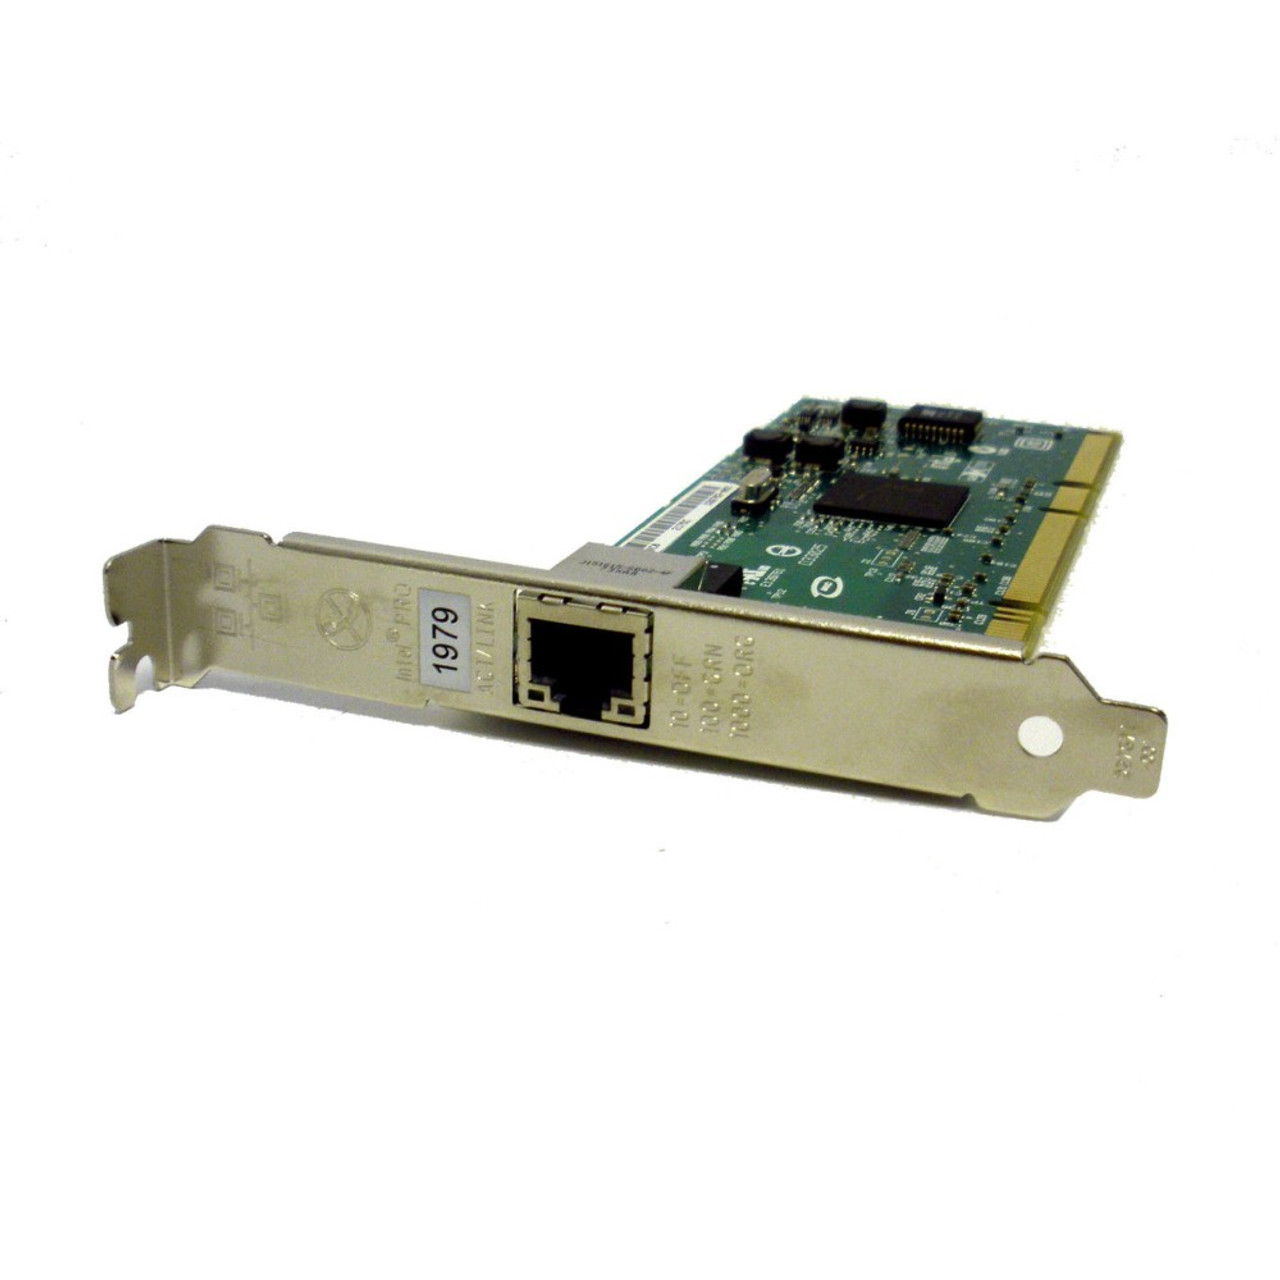 IBM ETHERJET PCI WINDOWS 7 X64 DRIVER